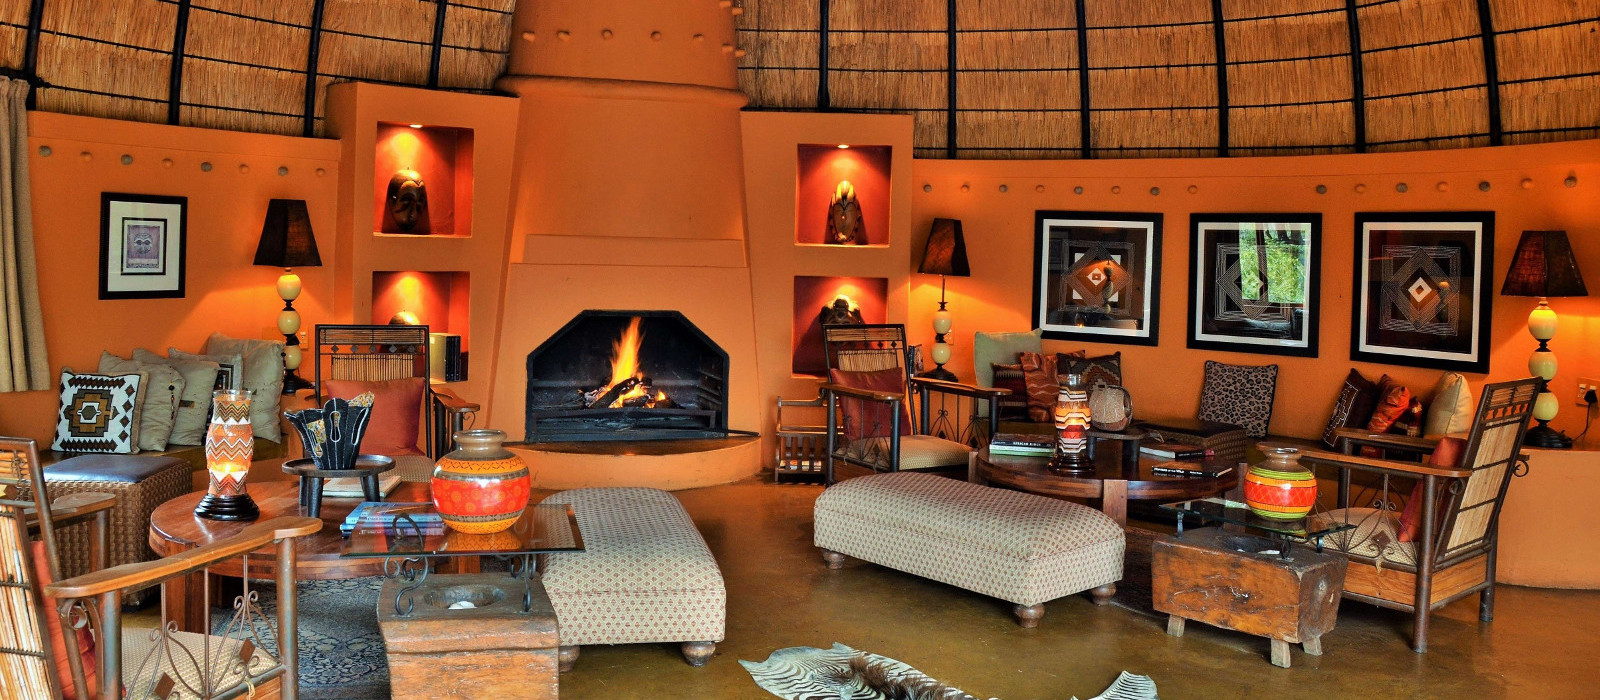 Hotel Hoyo Hoyo Safari Lodge South Africa